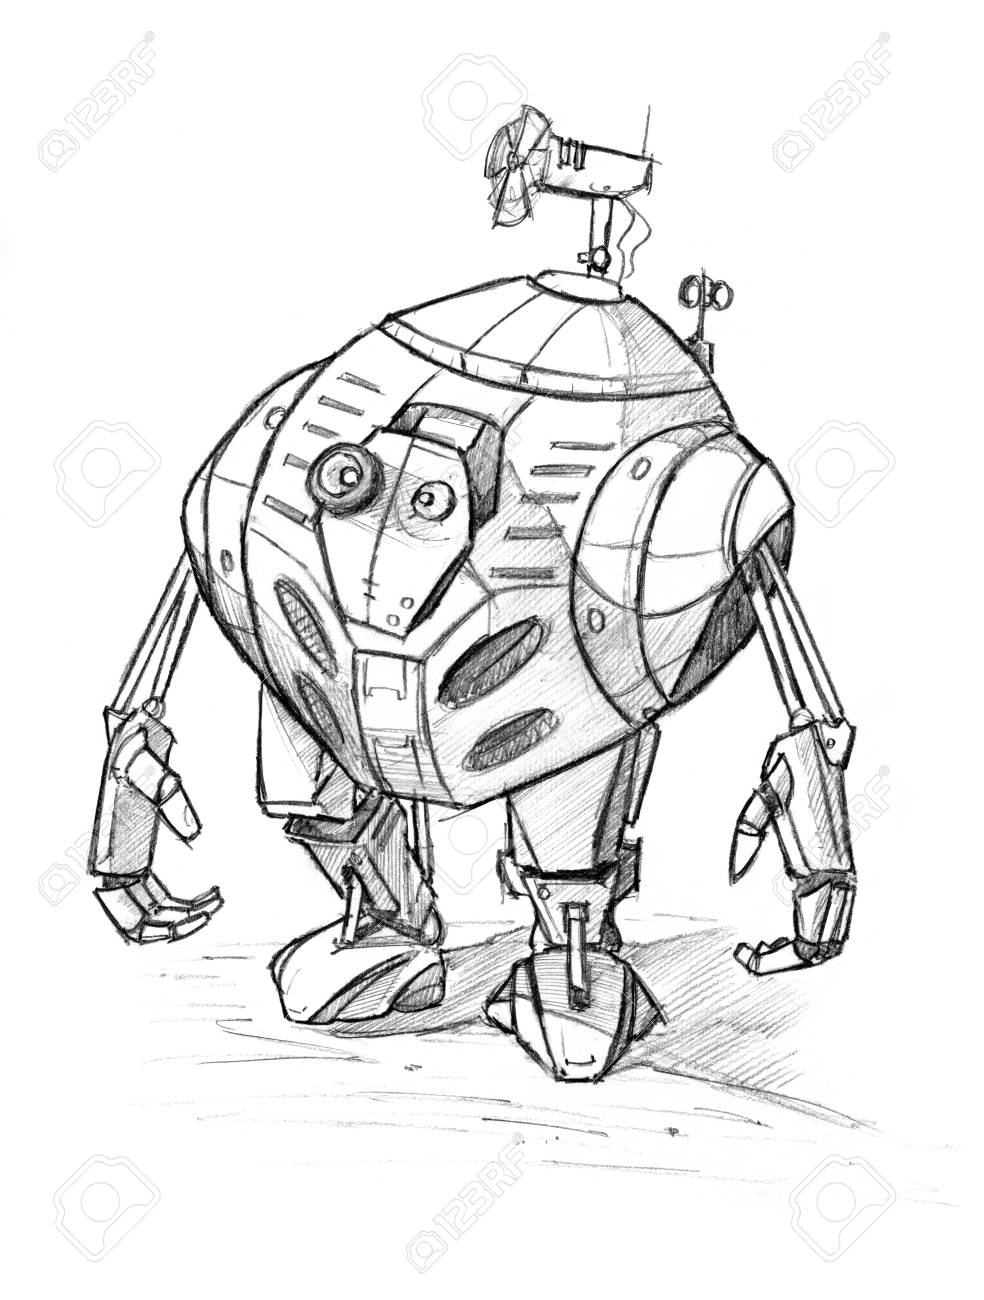 Black and white rough pencil sketch of cute funny robot character stock photo 113856140